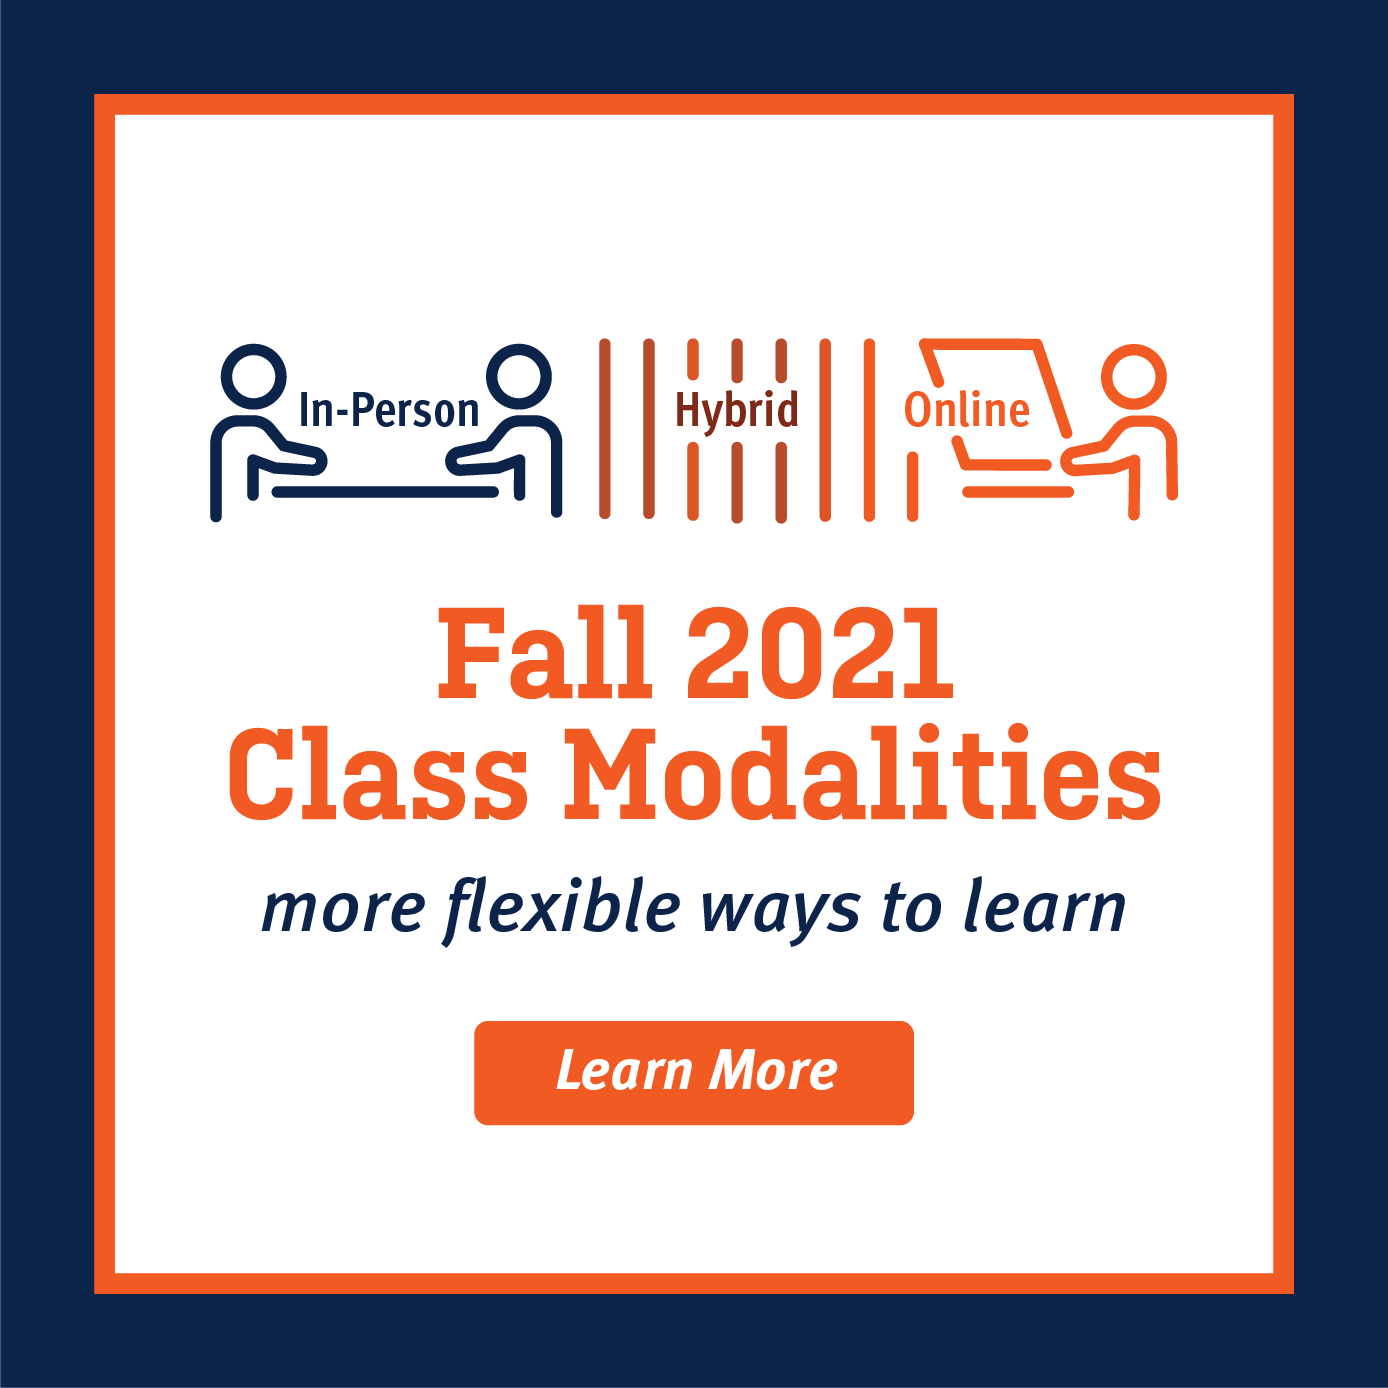 Fall 2021 Class Modalities - More flexible ways to learn. Learn more!